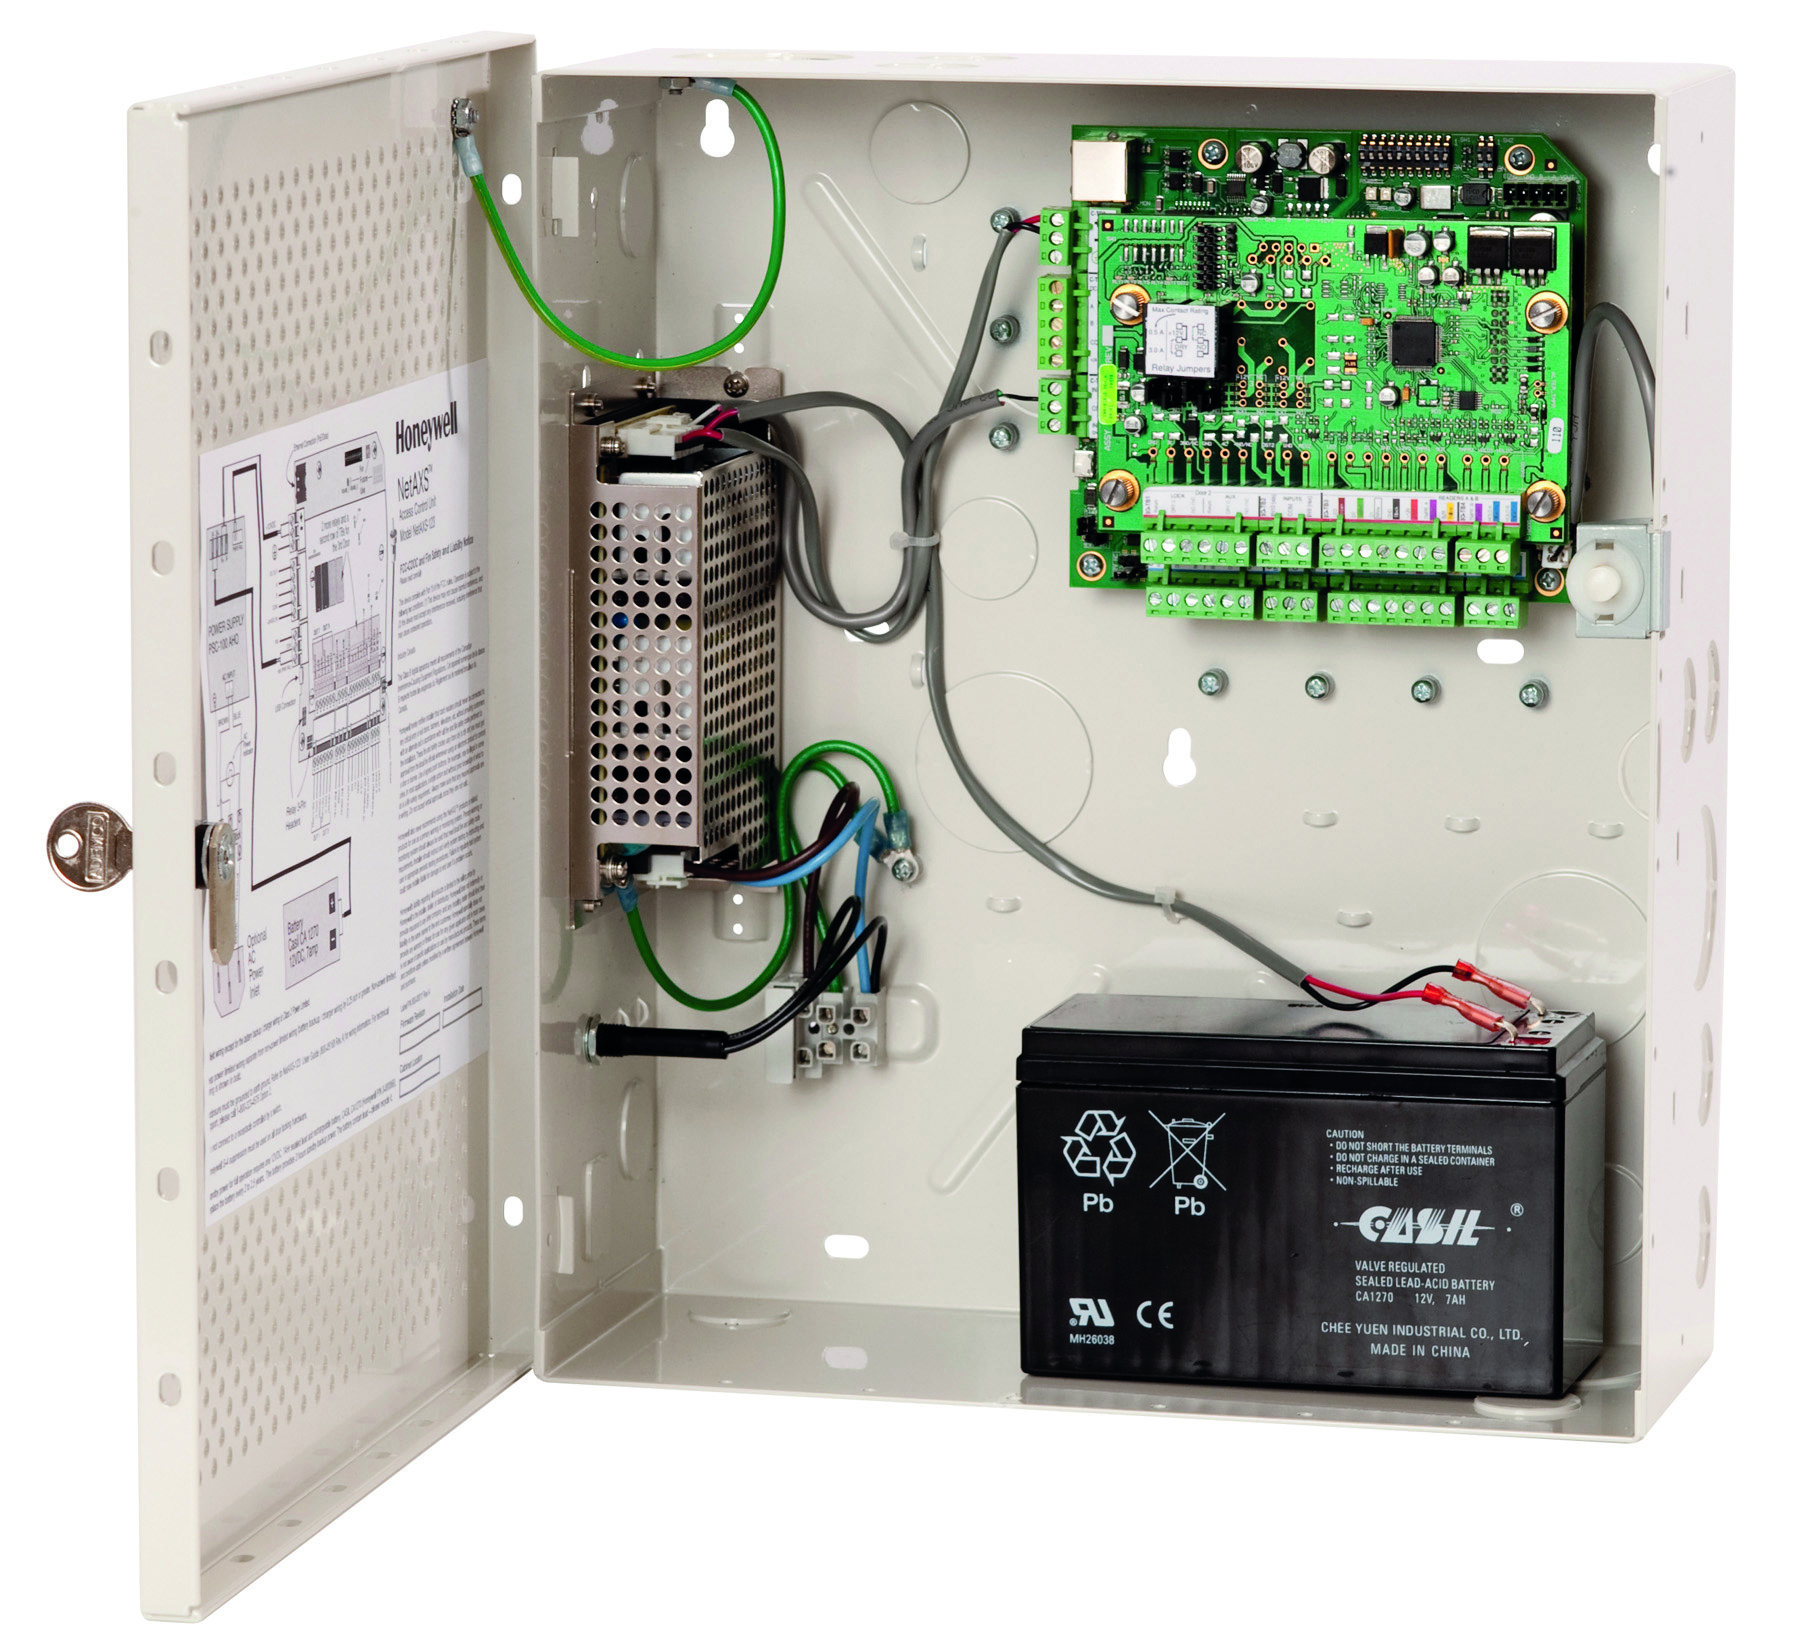 Honeywell Commercial Security Honeywell Web-Based Access ... on